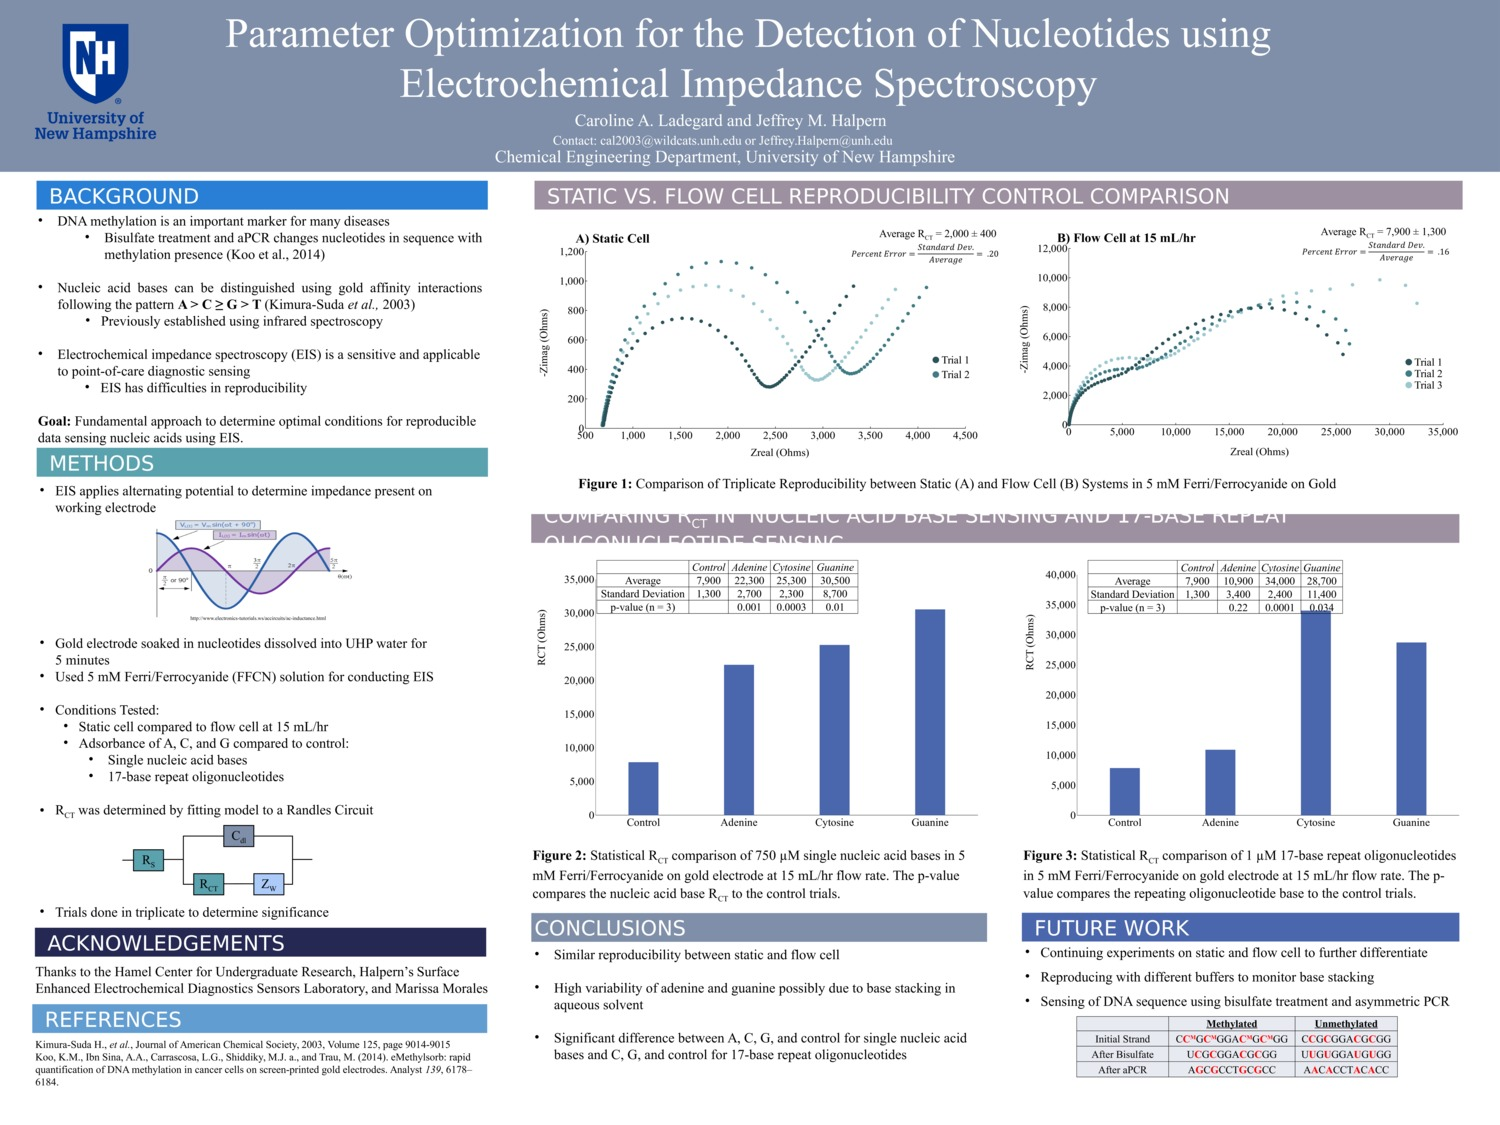 Parameter Optimization Of The Detection Of Nucleotides Using Electrochemical Impedance Spectroscopy by mm1452